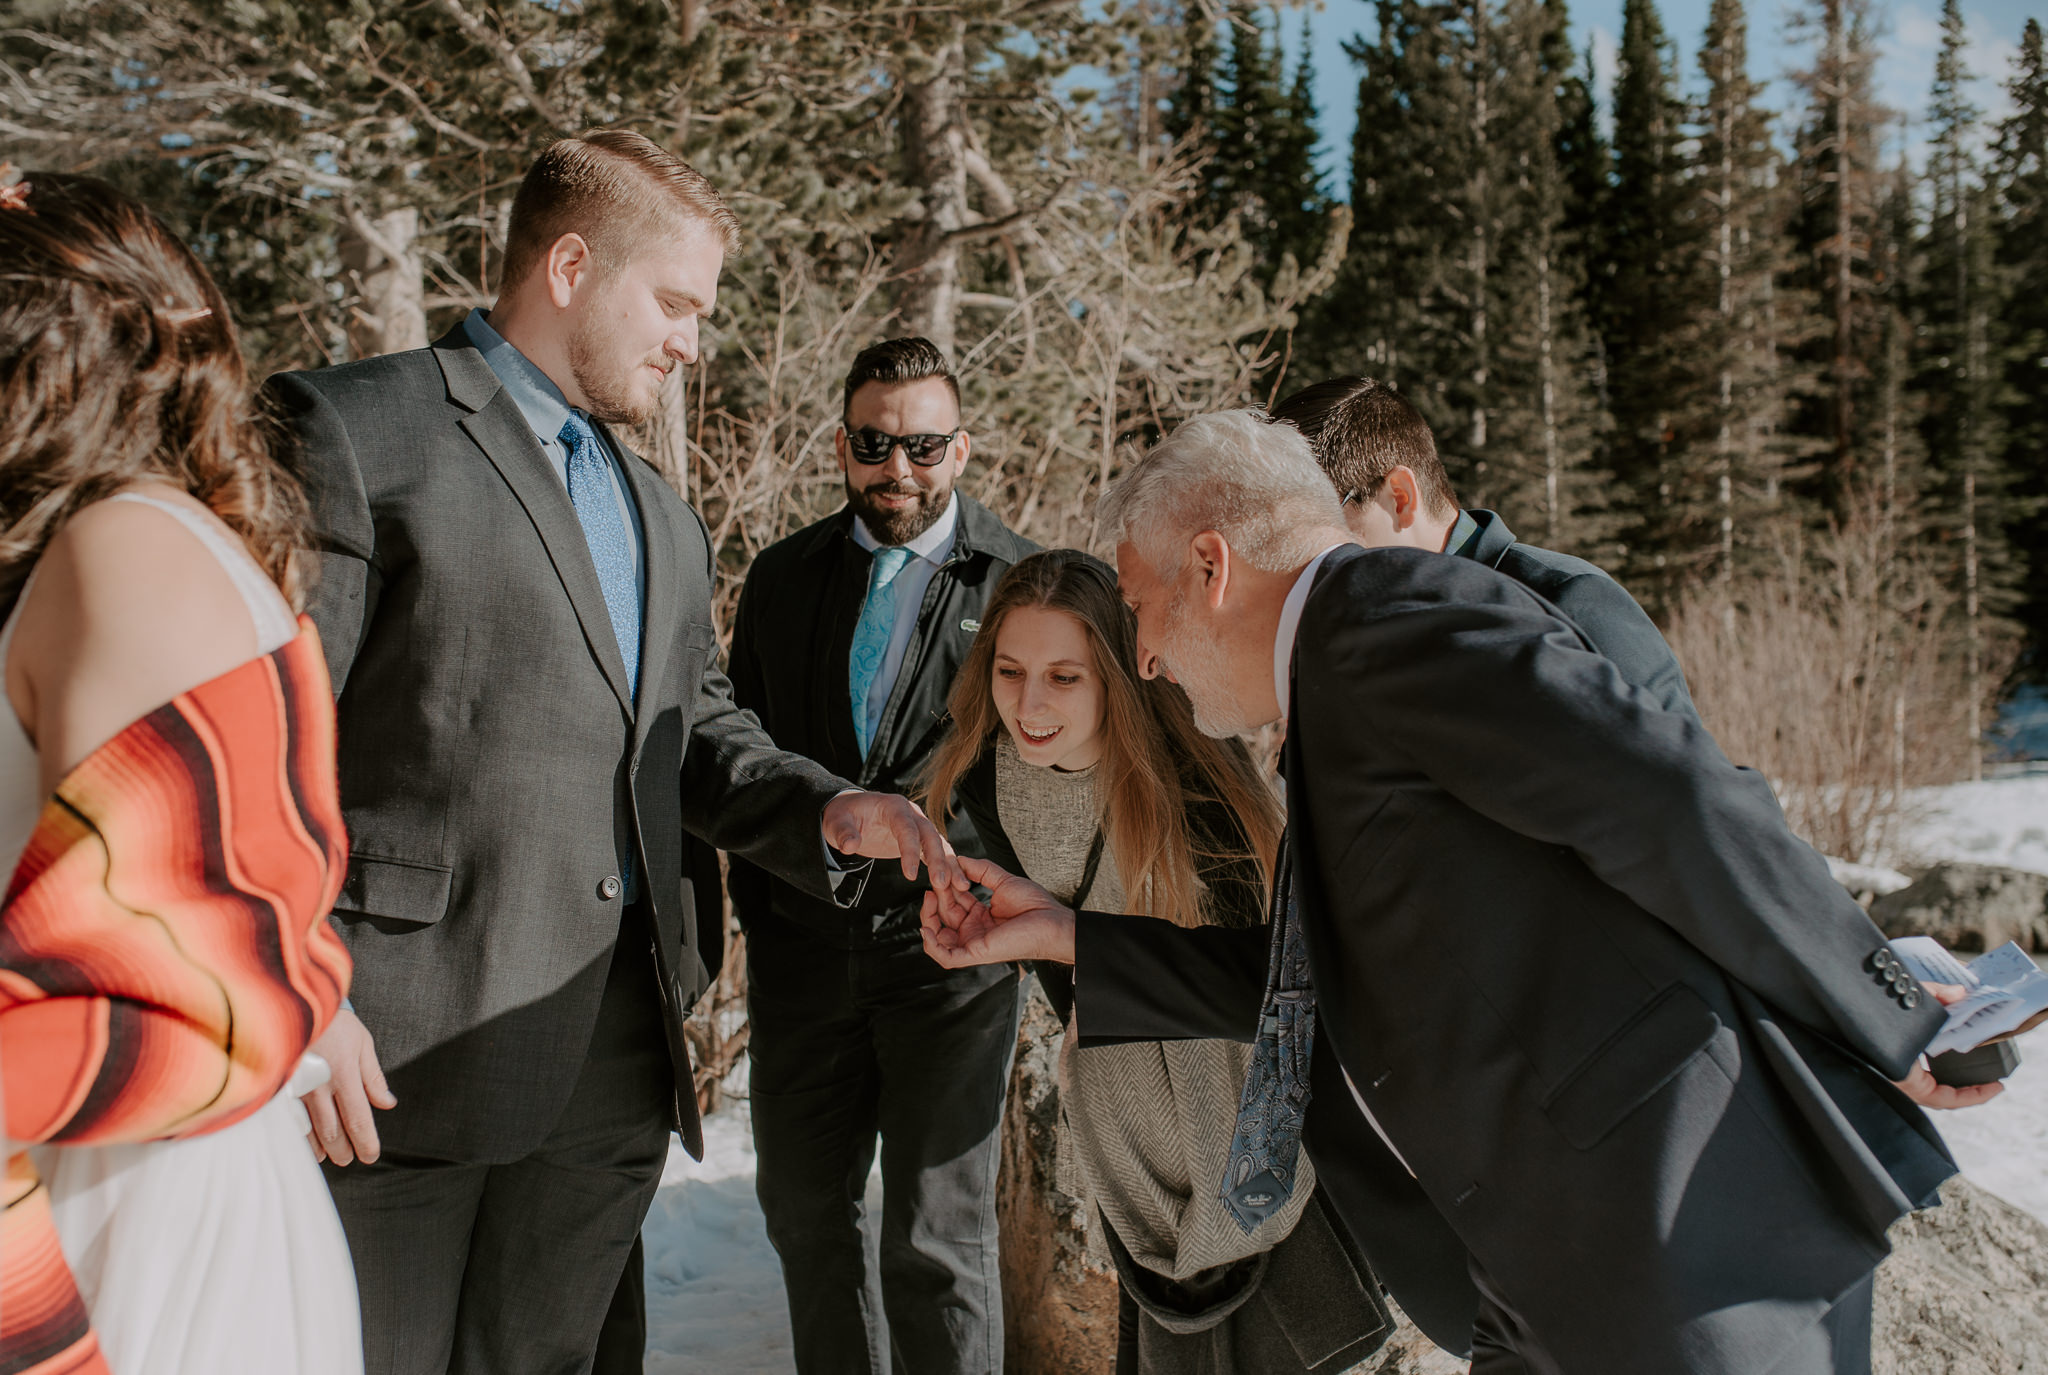 Elopement ceremony at Bear Lake in Colorado